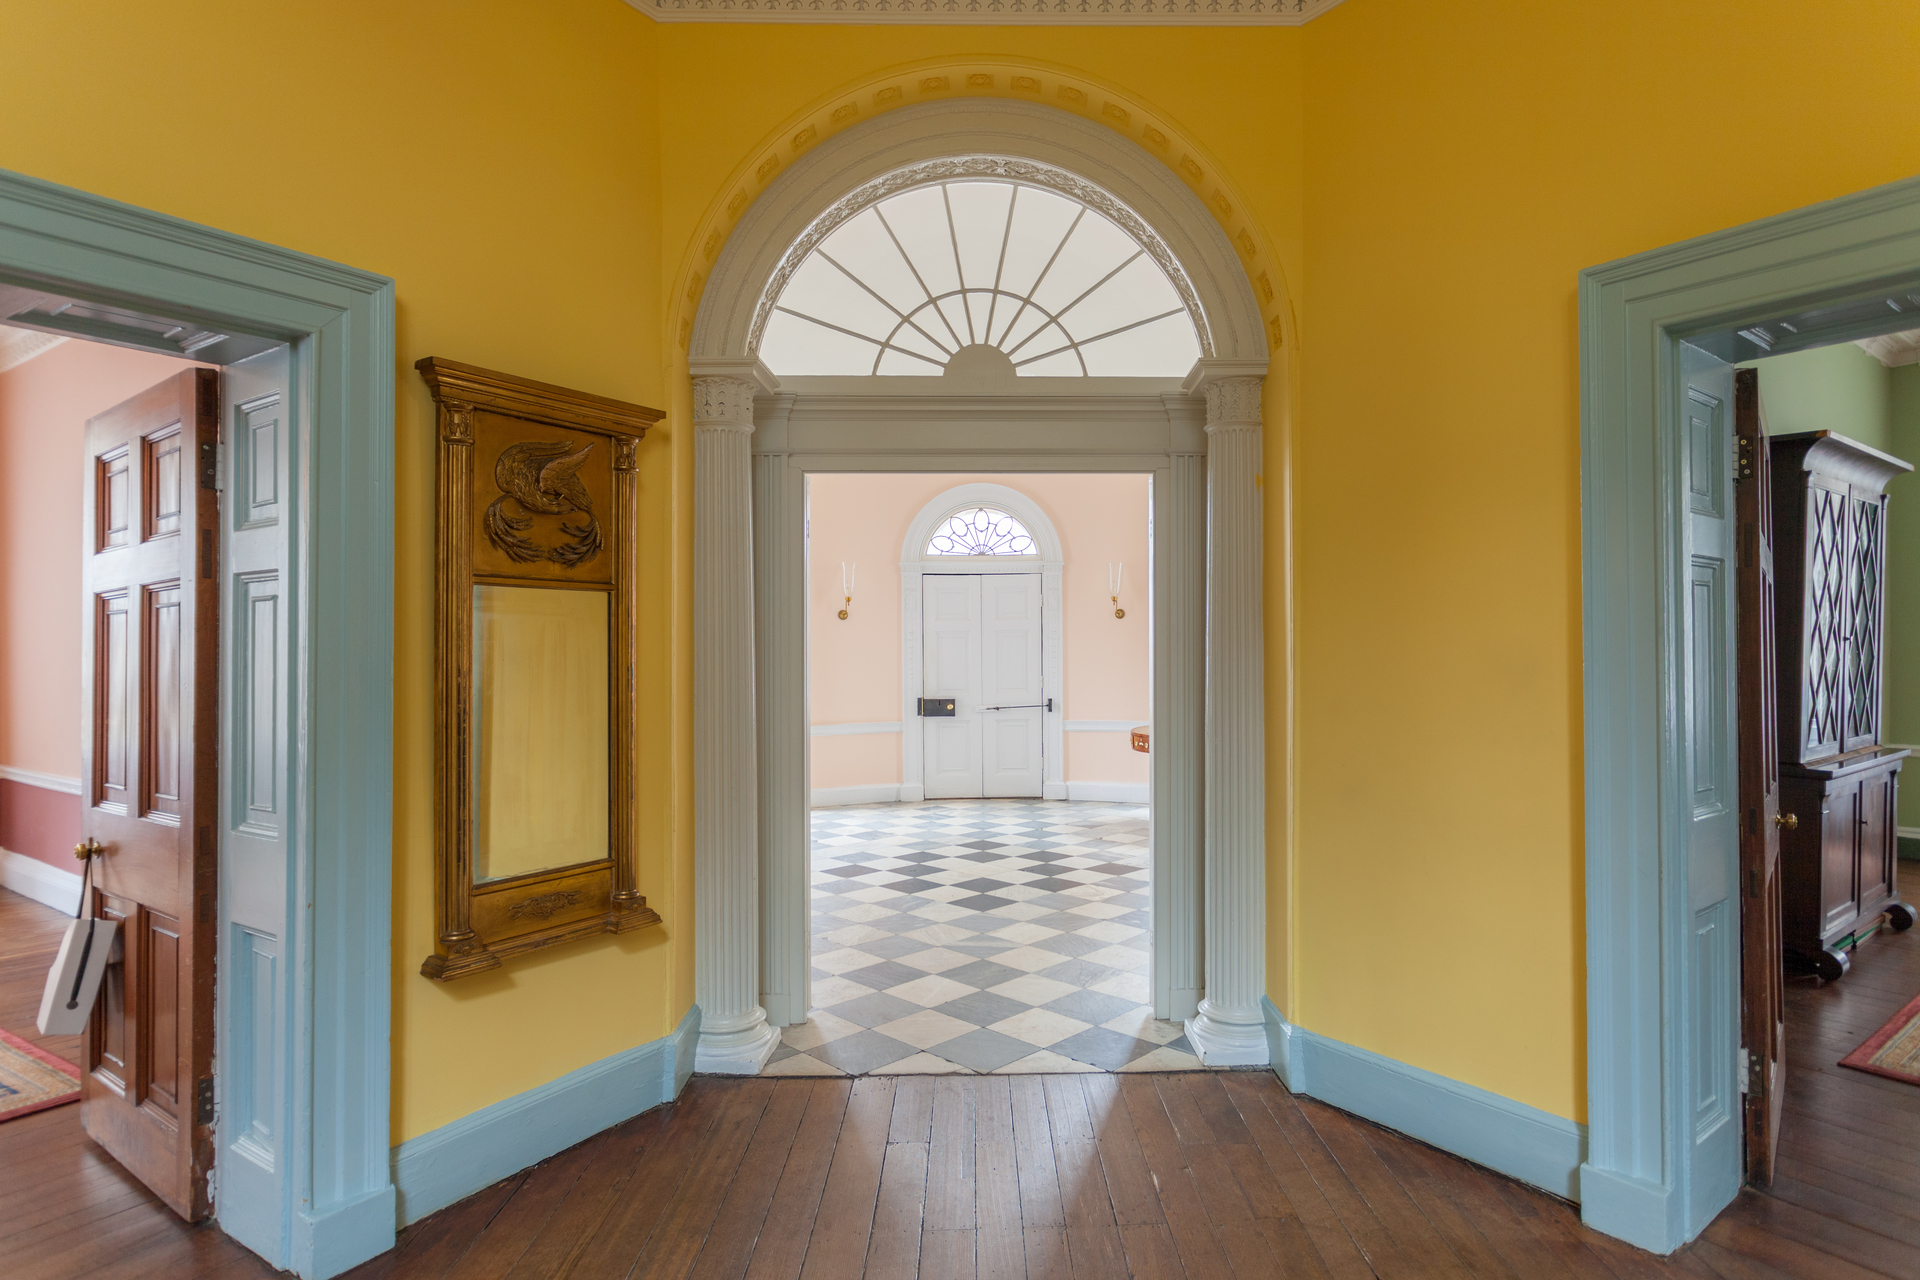 Here you can see the decorative archway on the opposite side of the double doors leading into the Stair Hall.